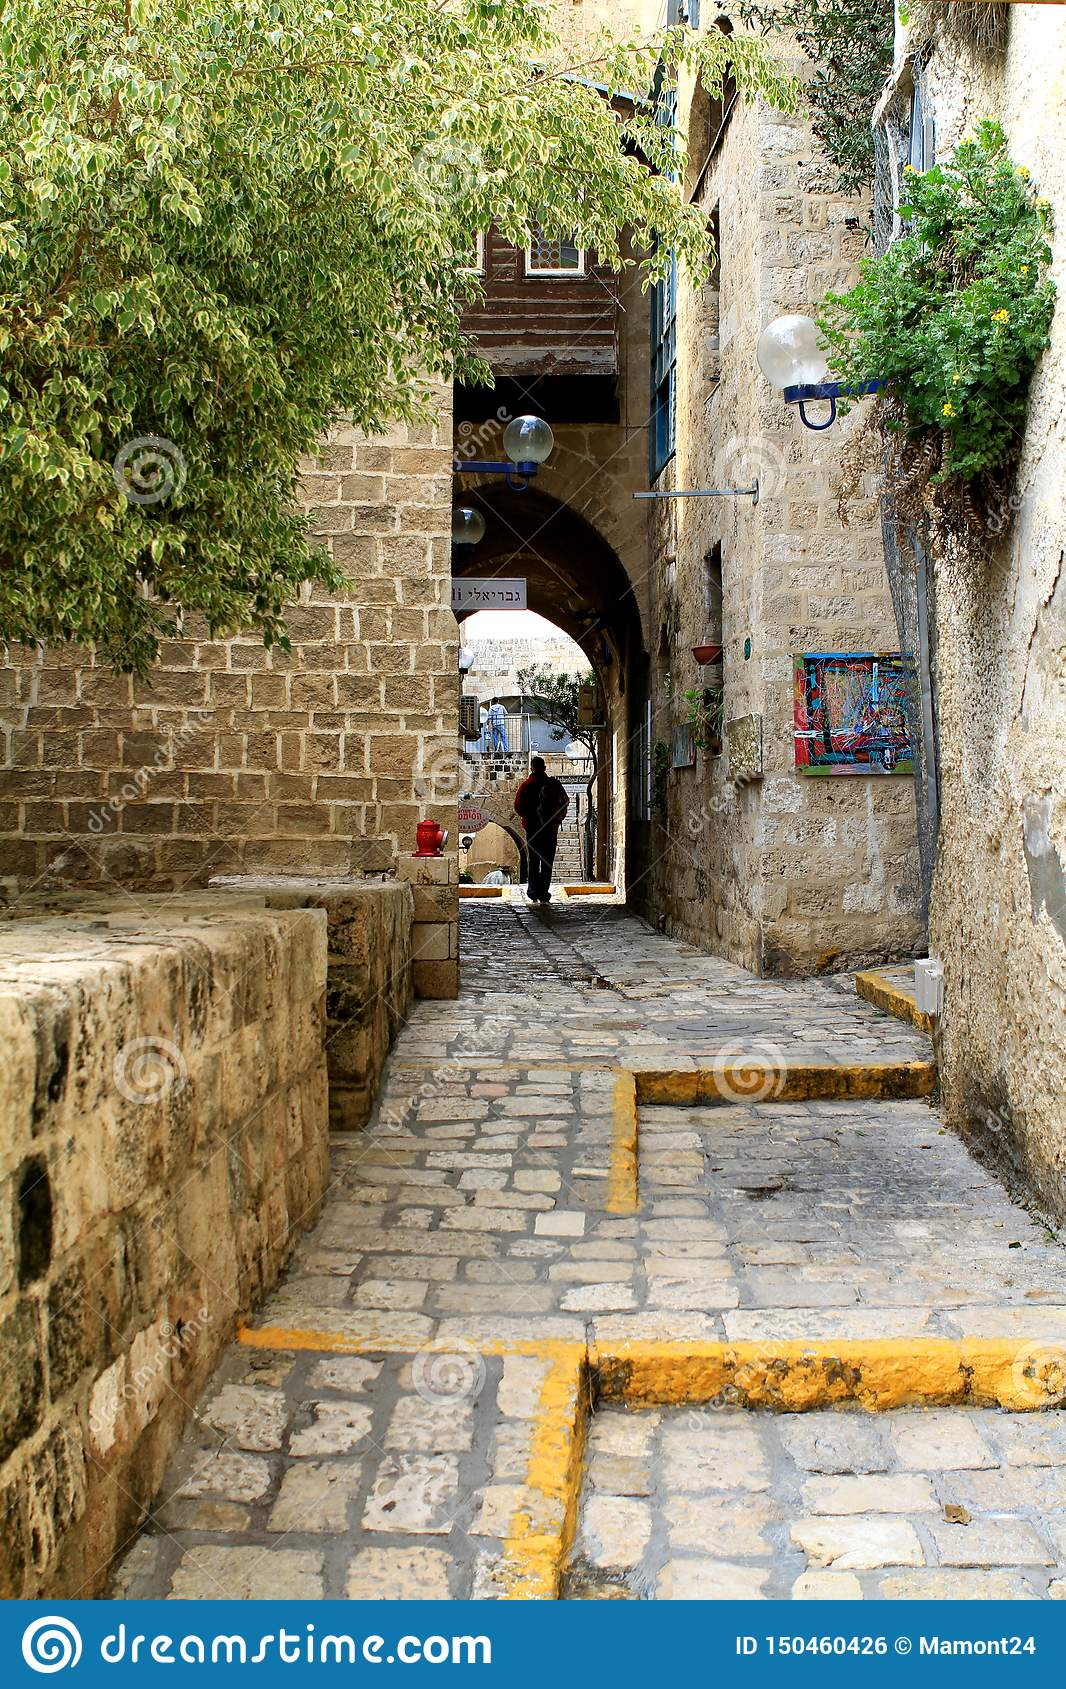 The streets of old Jaffa